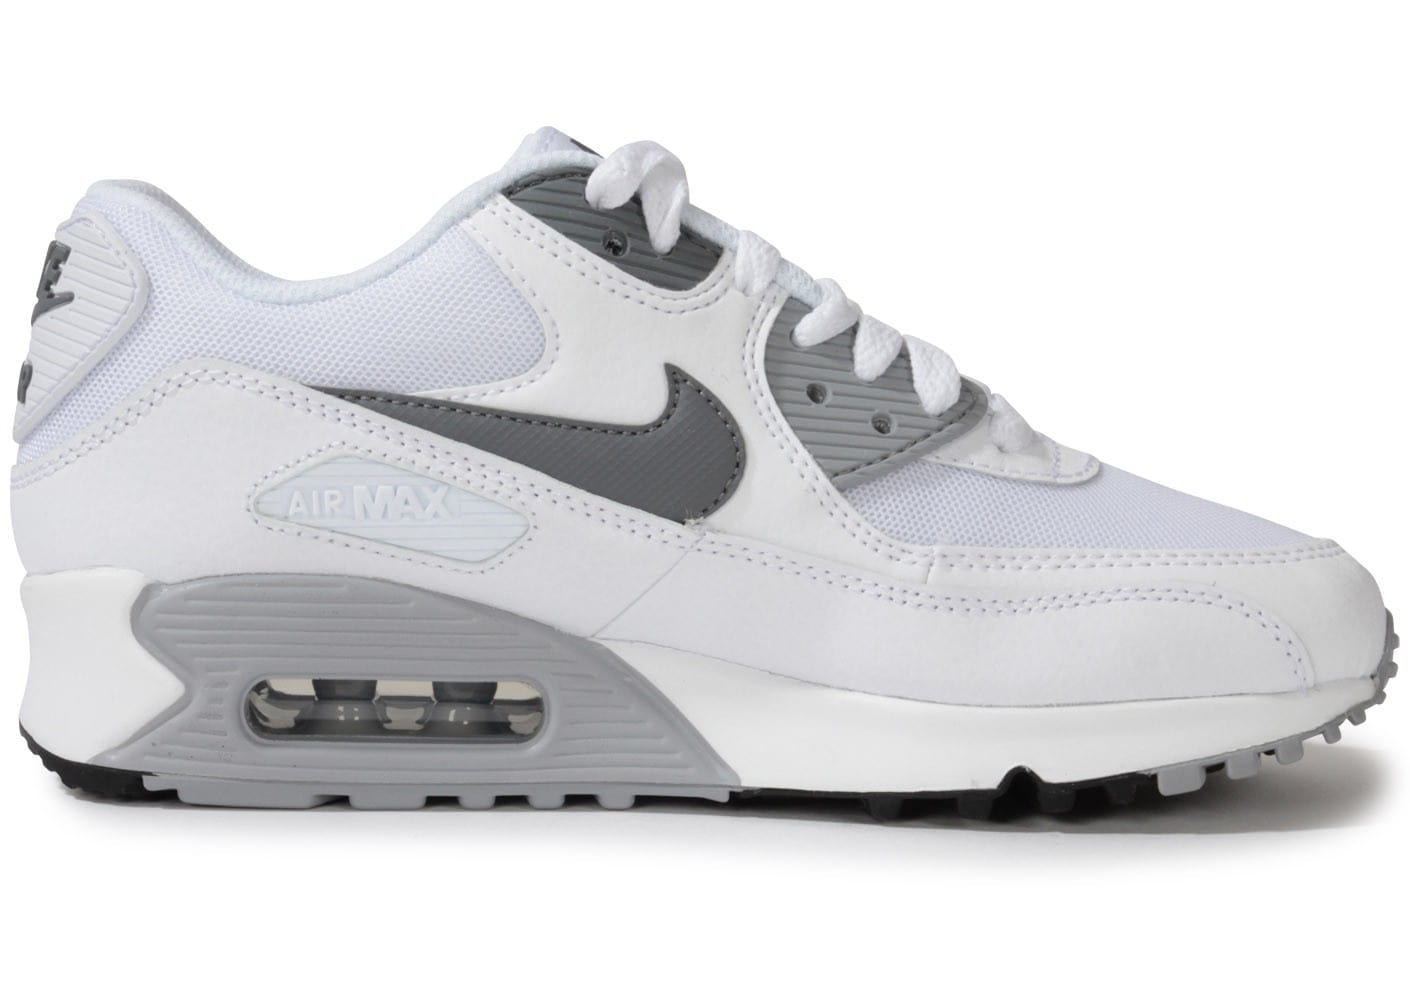 nike xccelerator tr hommes - Nike AIR MAX 90 ESSENTIAL BLANCHE ET GRISE - Chaussures Nike ...